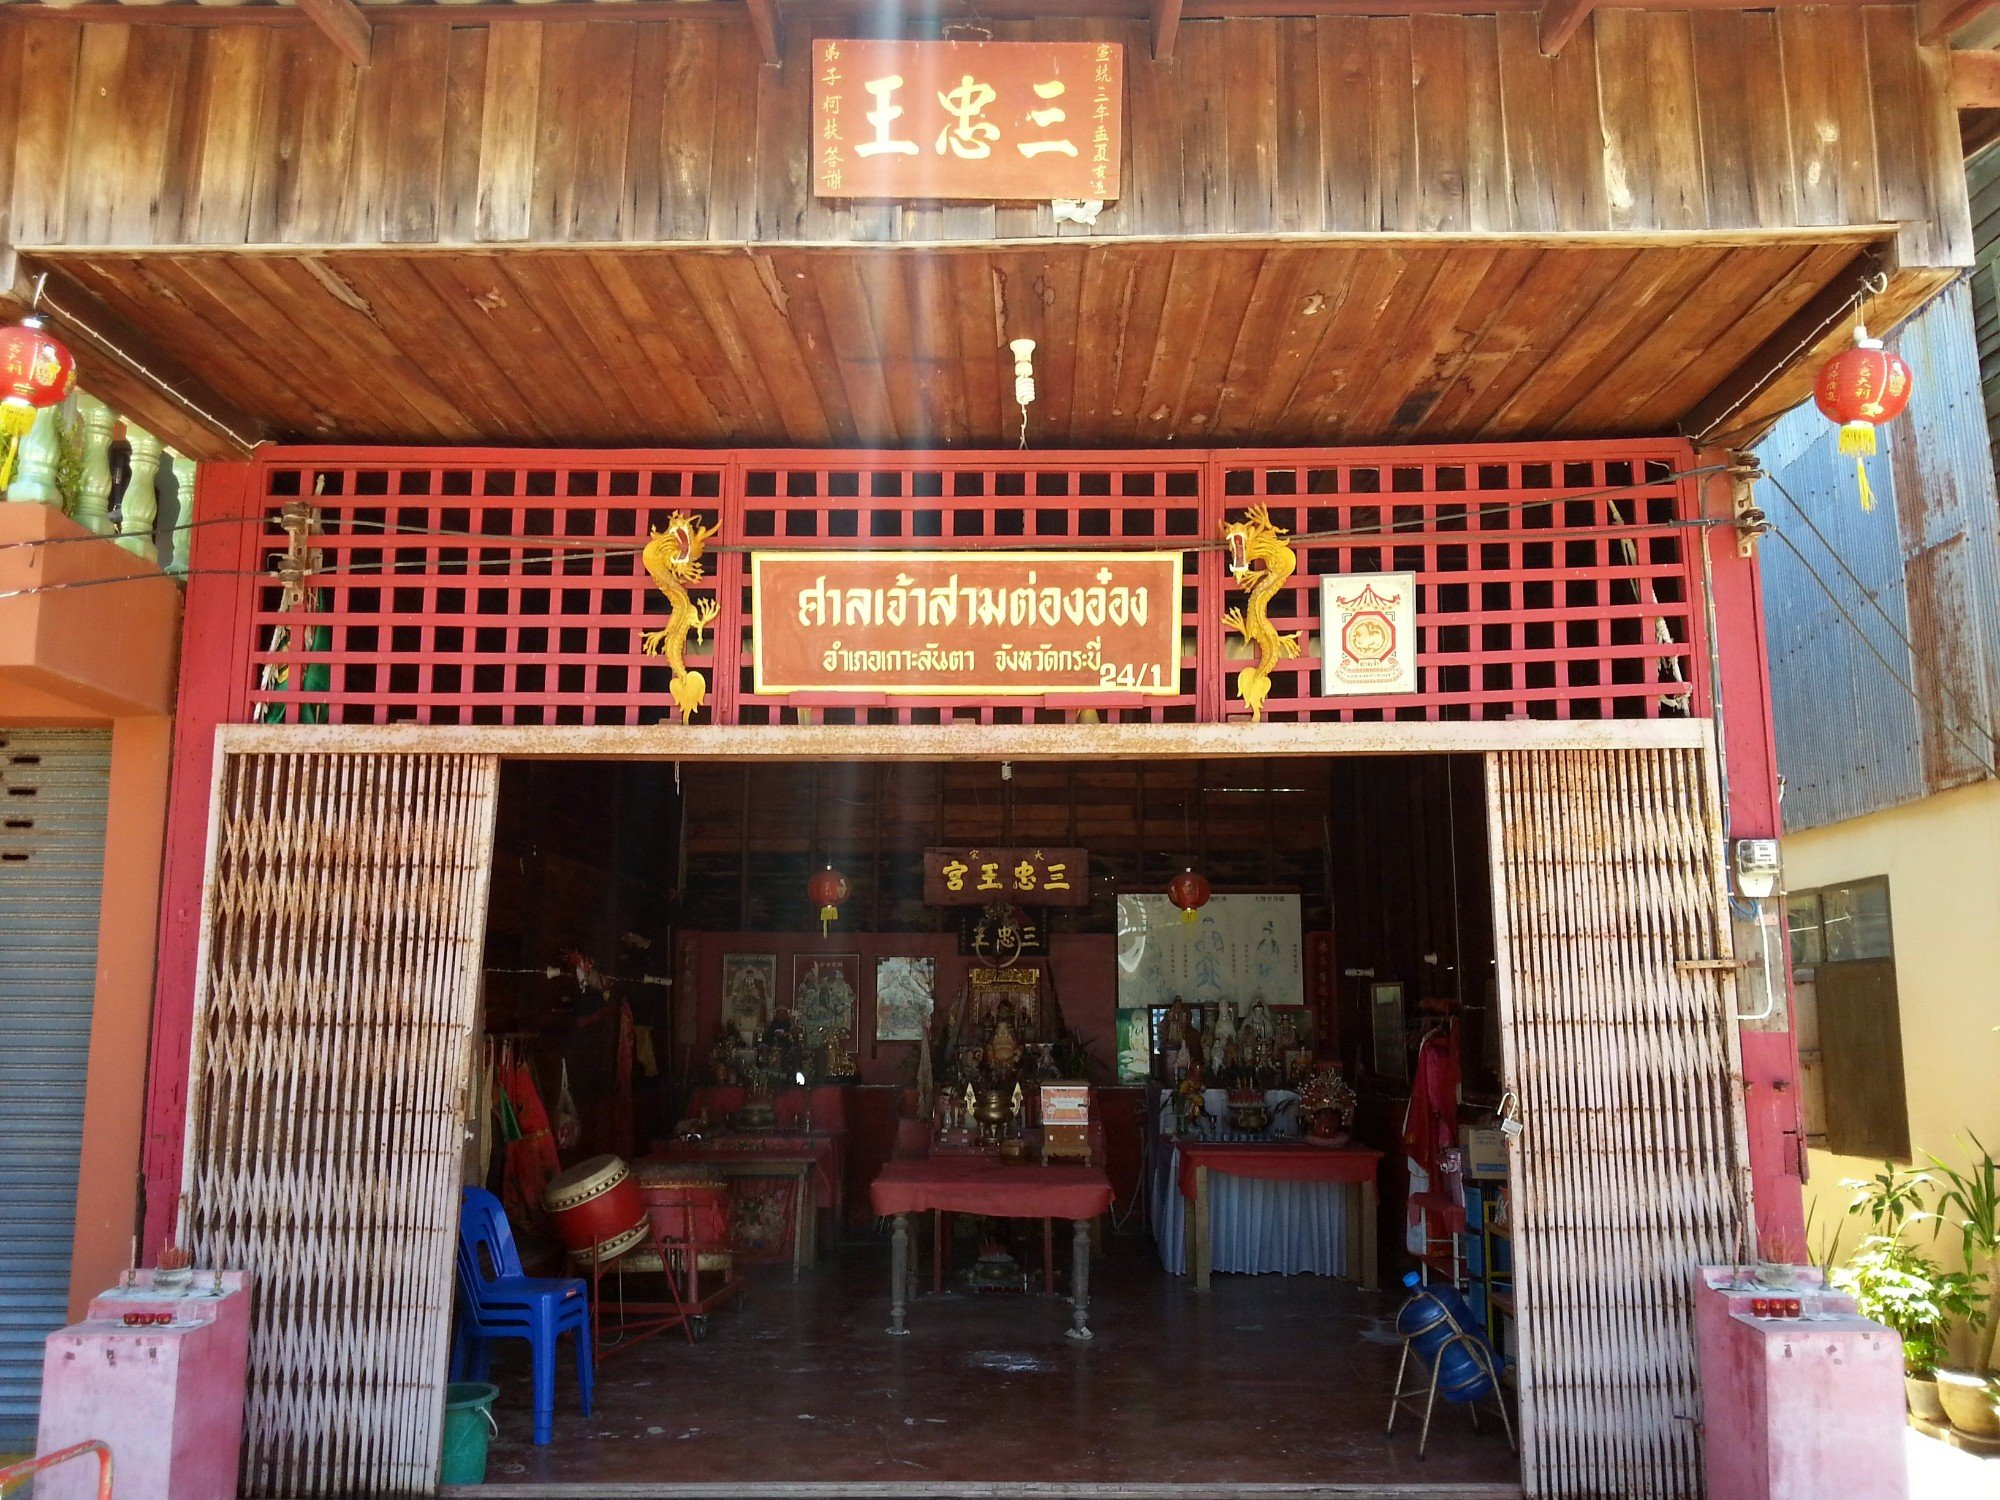 Chinese shrine in Koh Lanta Old Town